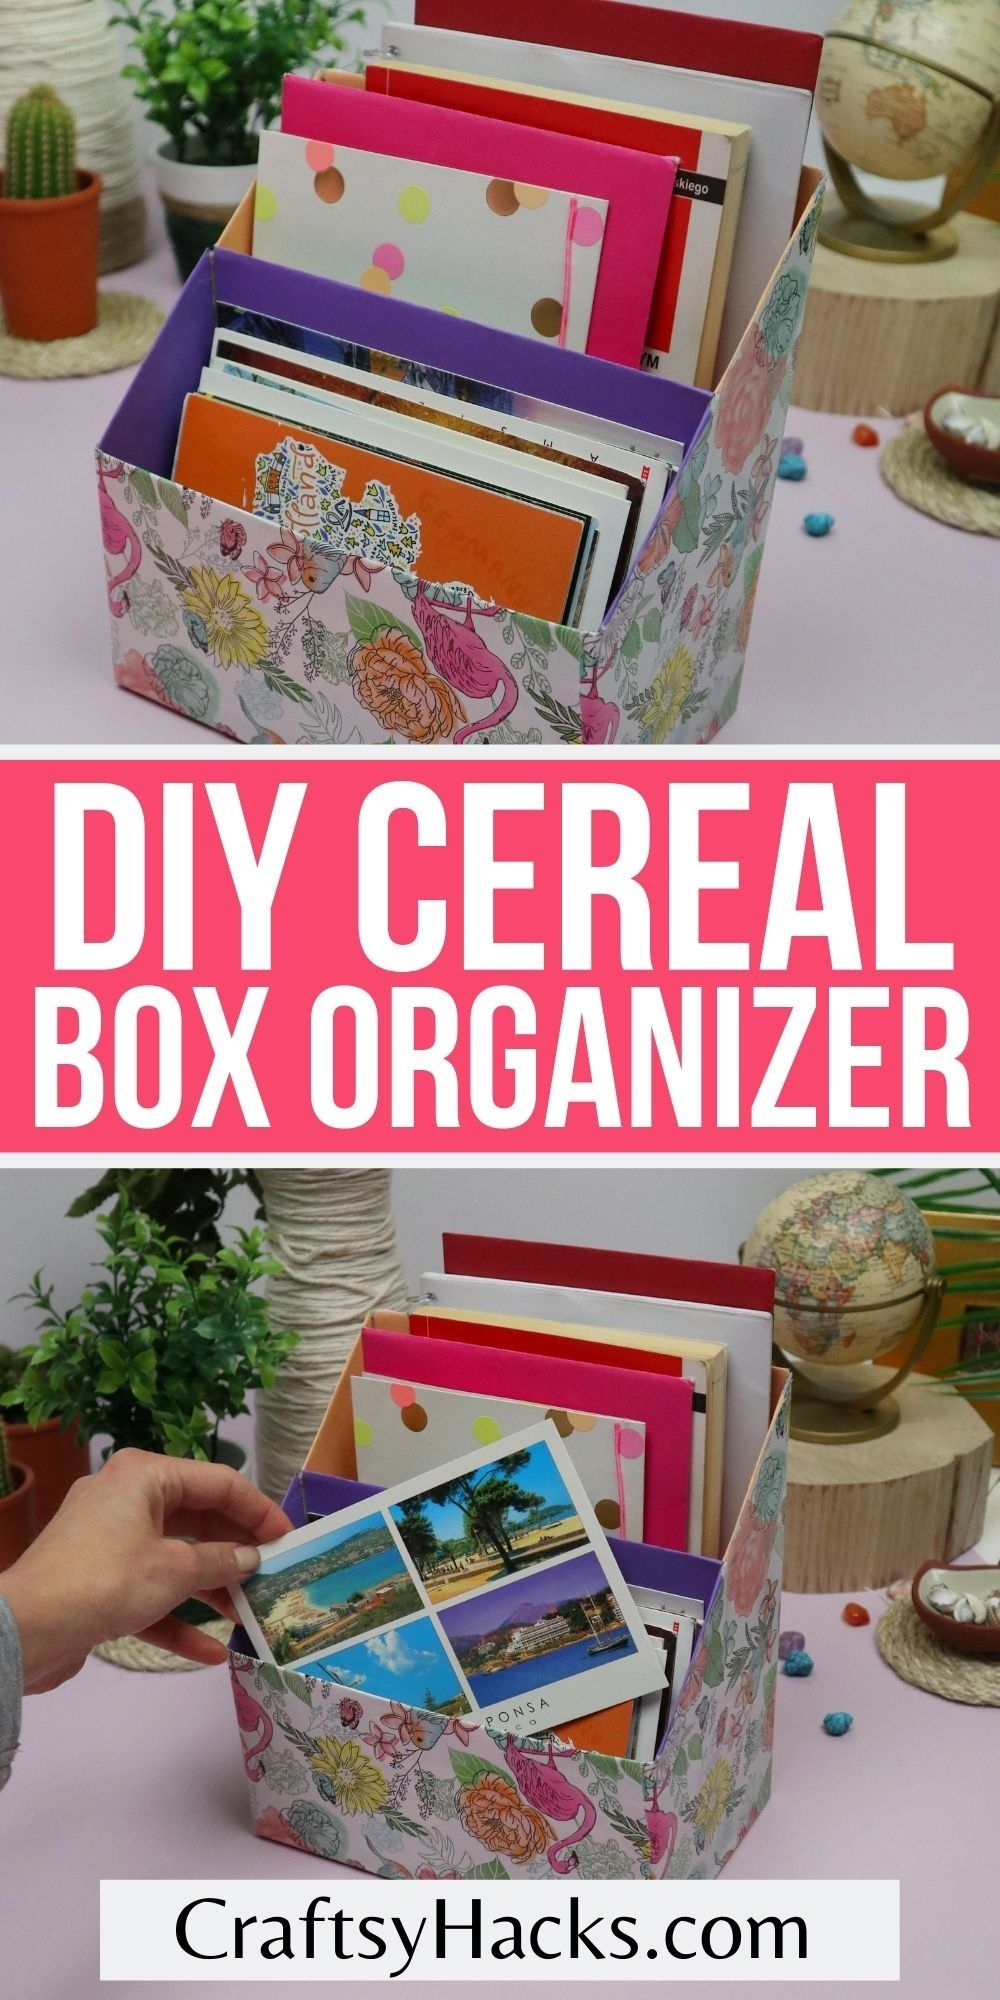 diy cereal box organizer upcycled